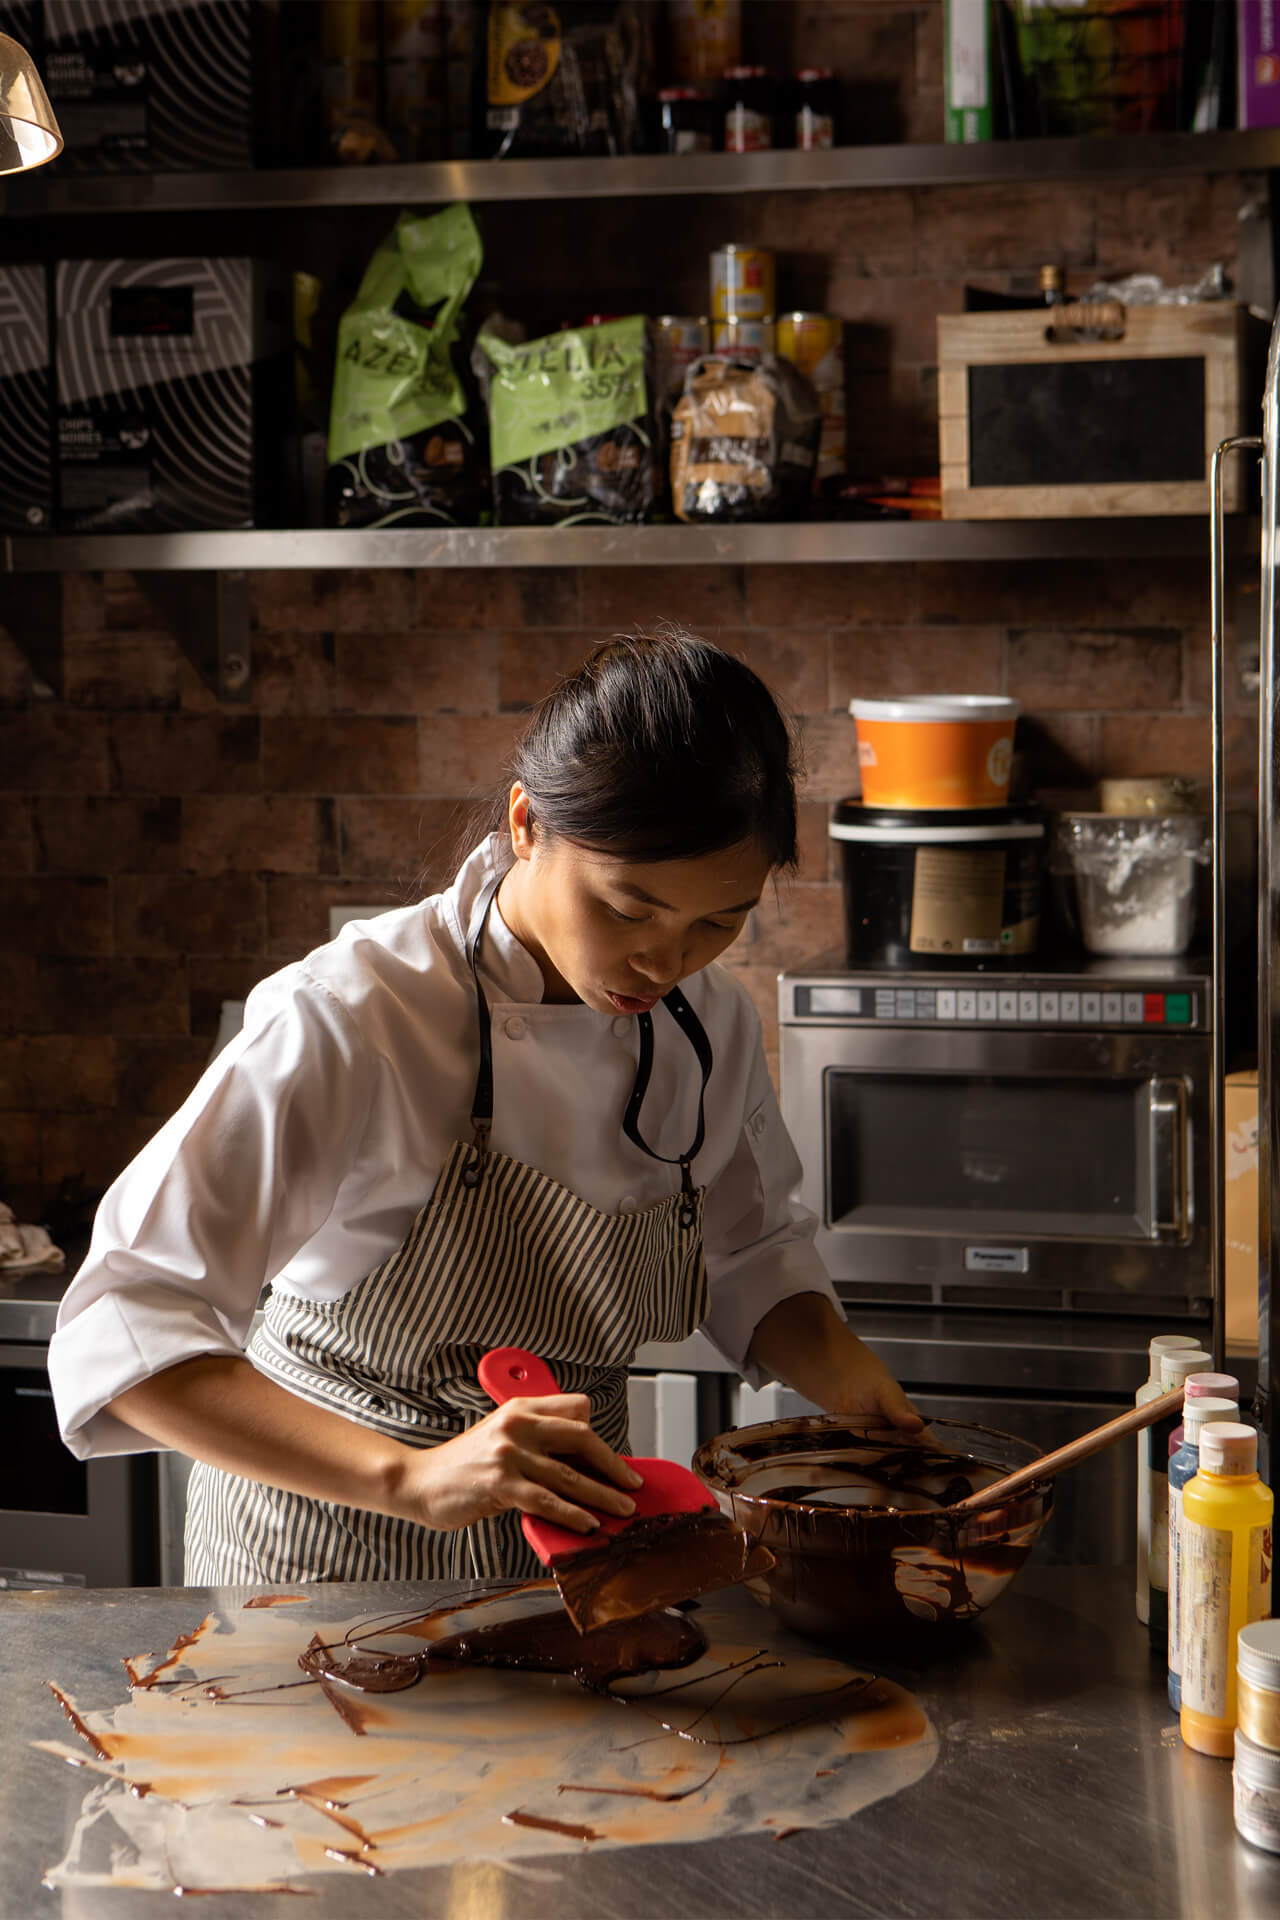 Chef Kristine Lotilla working with melted chocolate